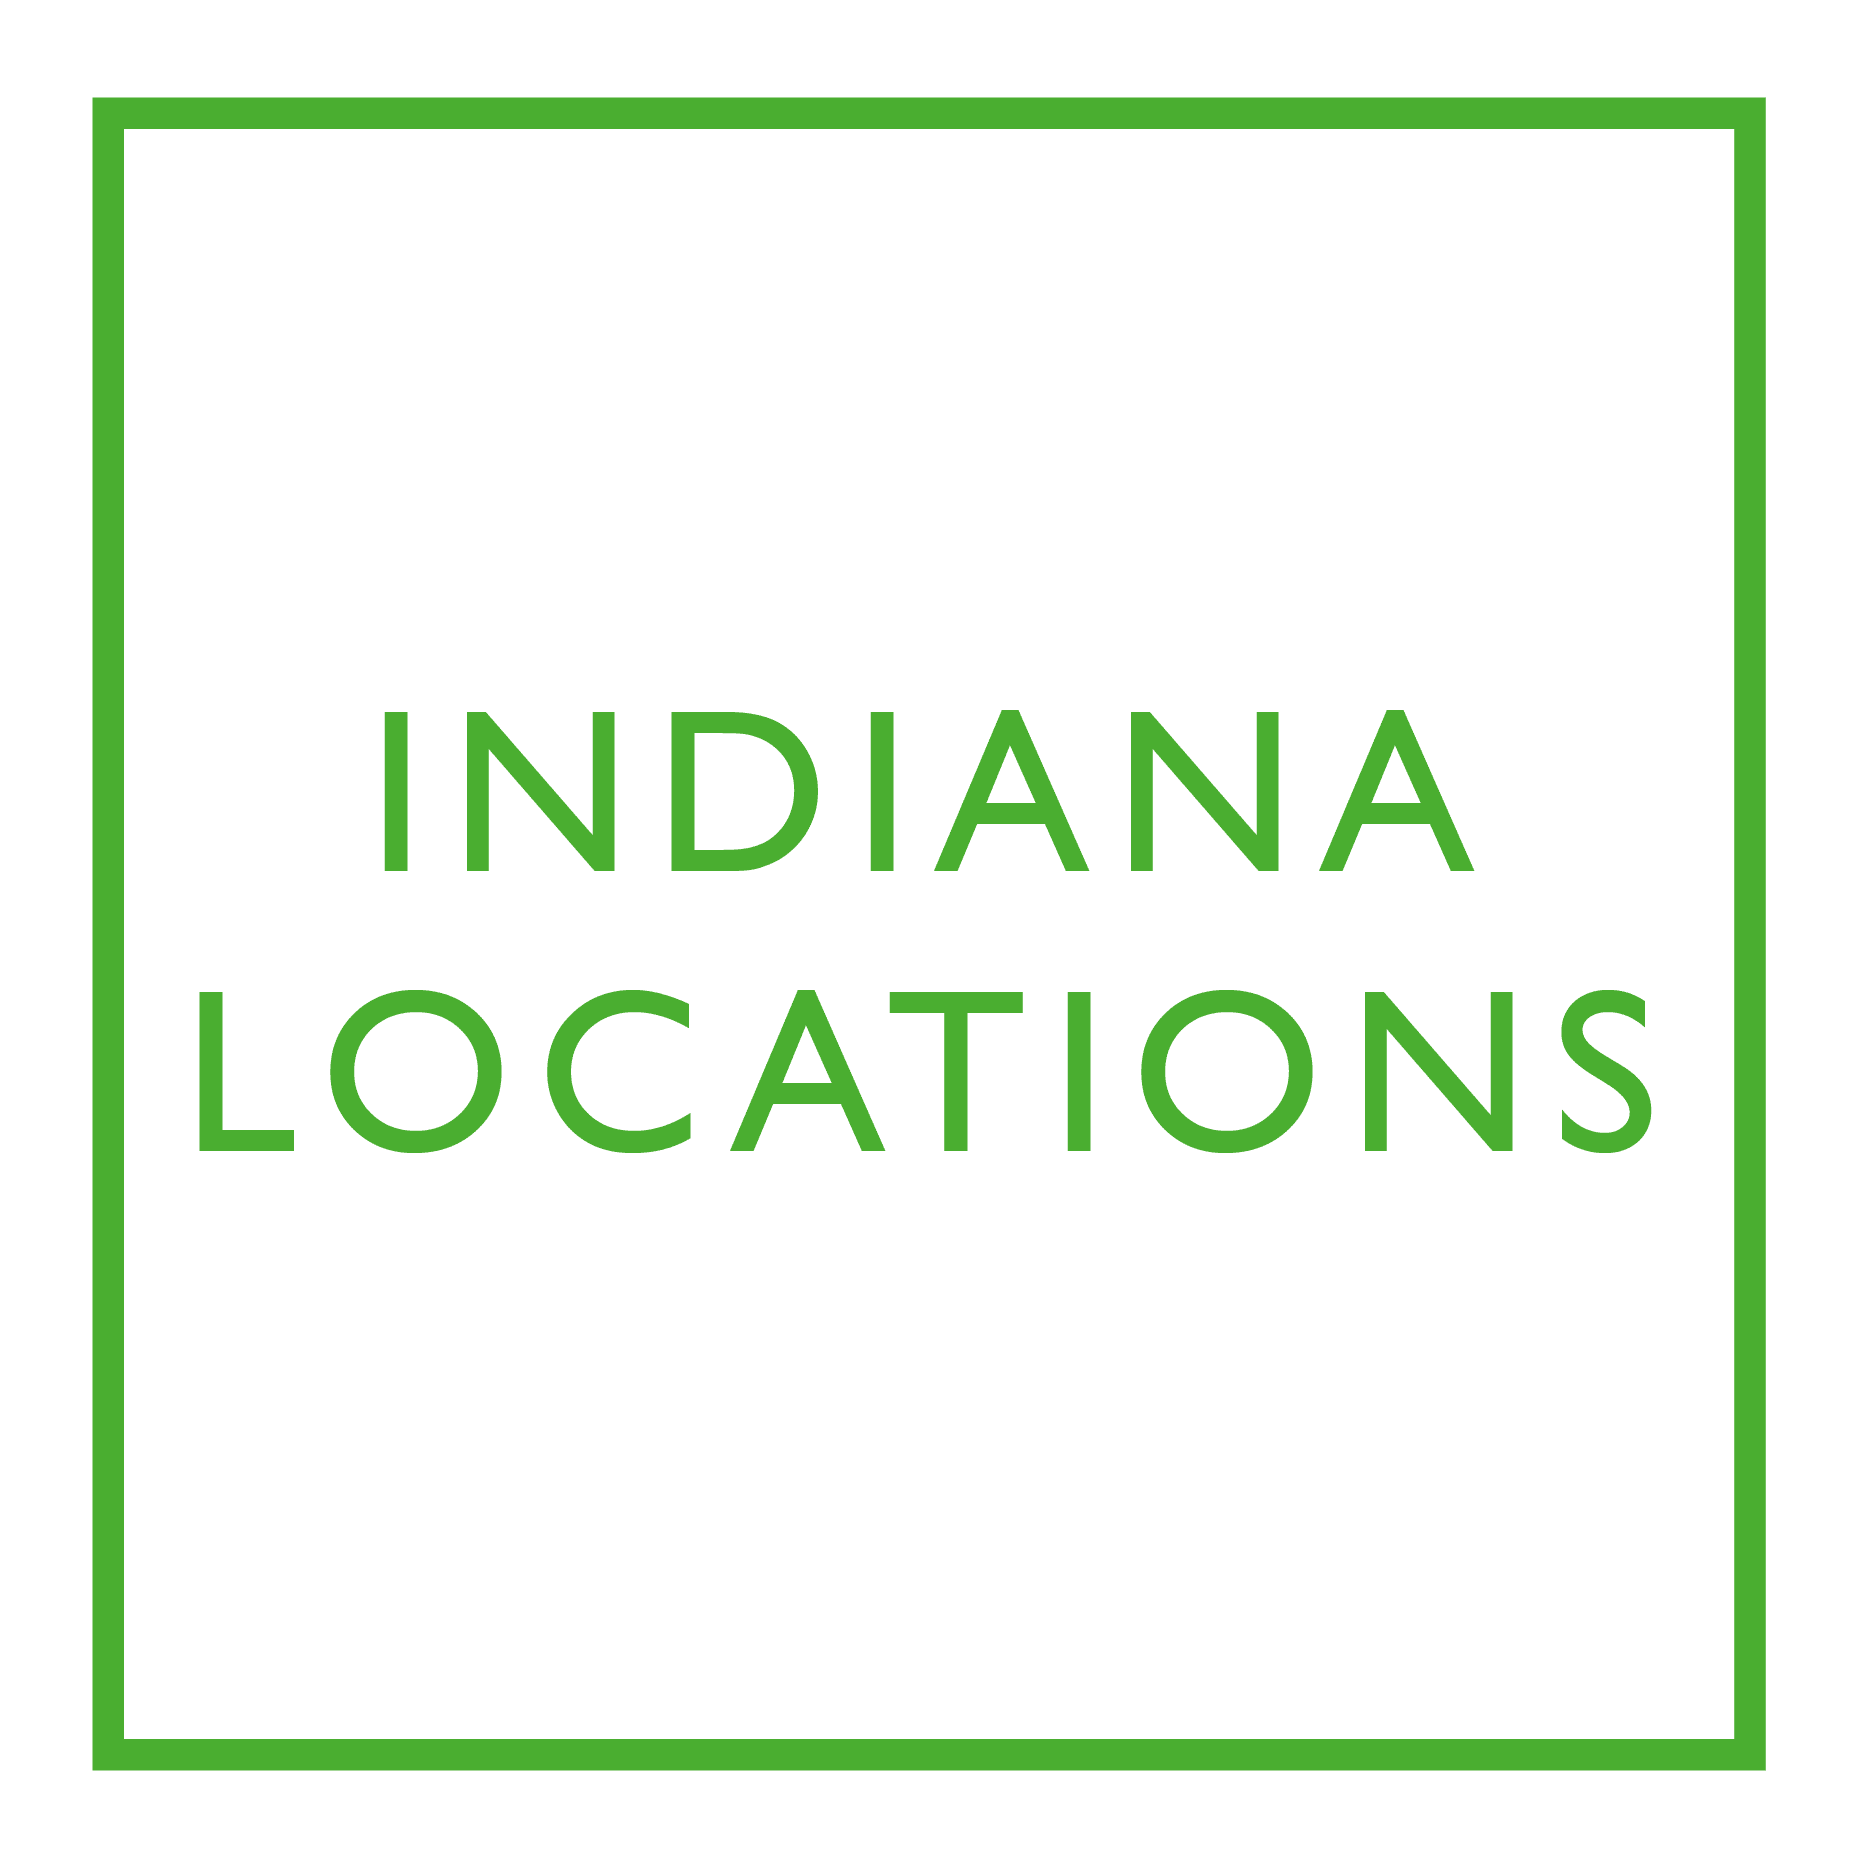 Check out our locations in Indiana